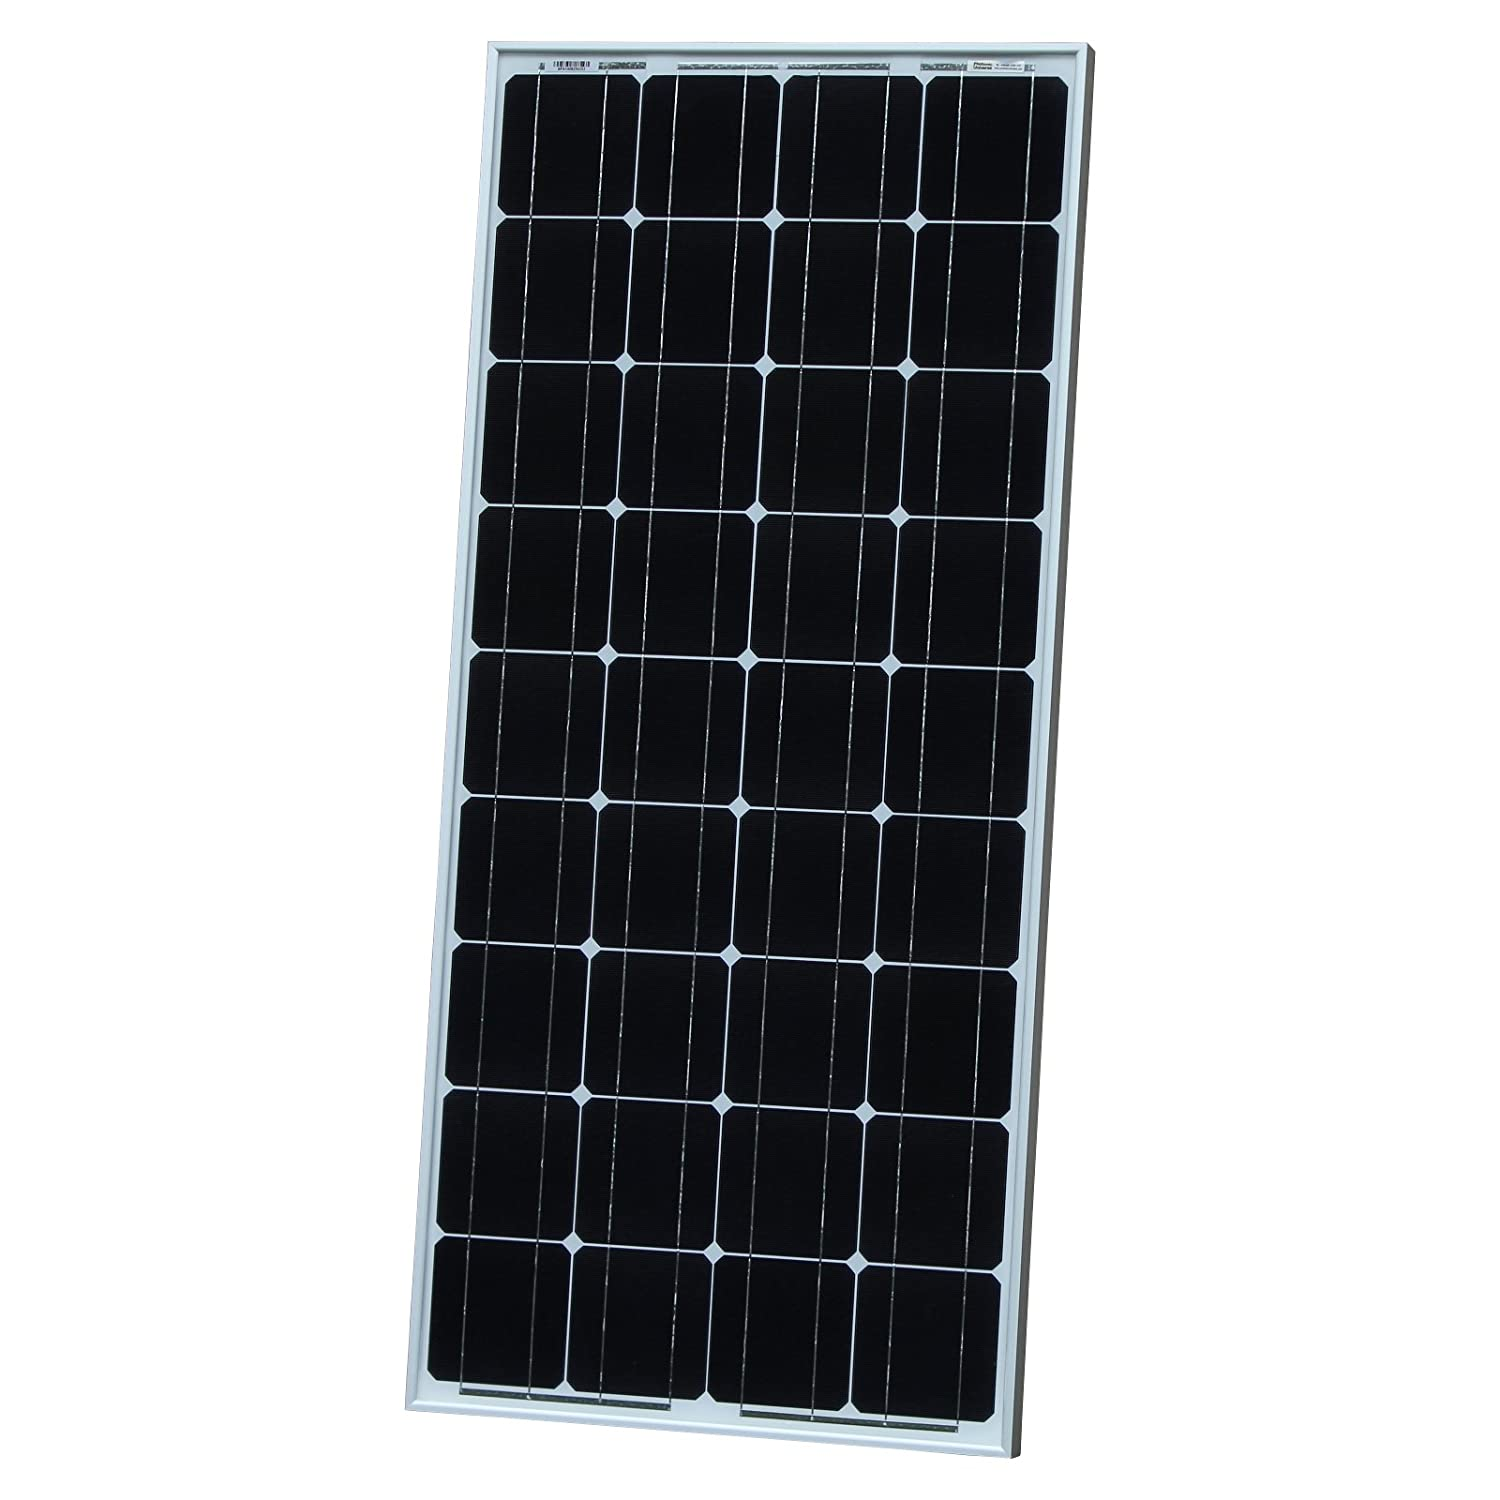 100W Photonic Universe monocrystalline solar panel with 5m of special solar cable, for charging a 12V battery in a motorhome, caravan, camper, boat or yacht, or off-grid / backup solar power systems 100 watt SPA-100M